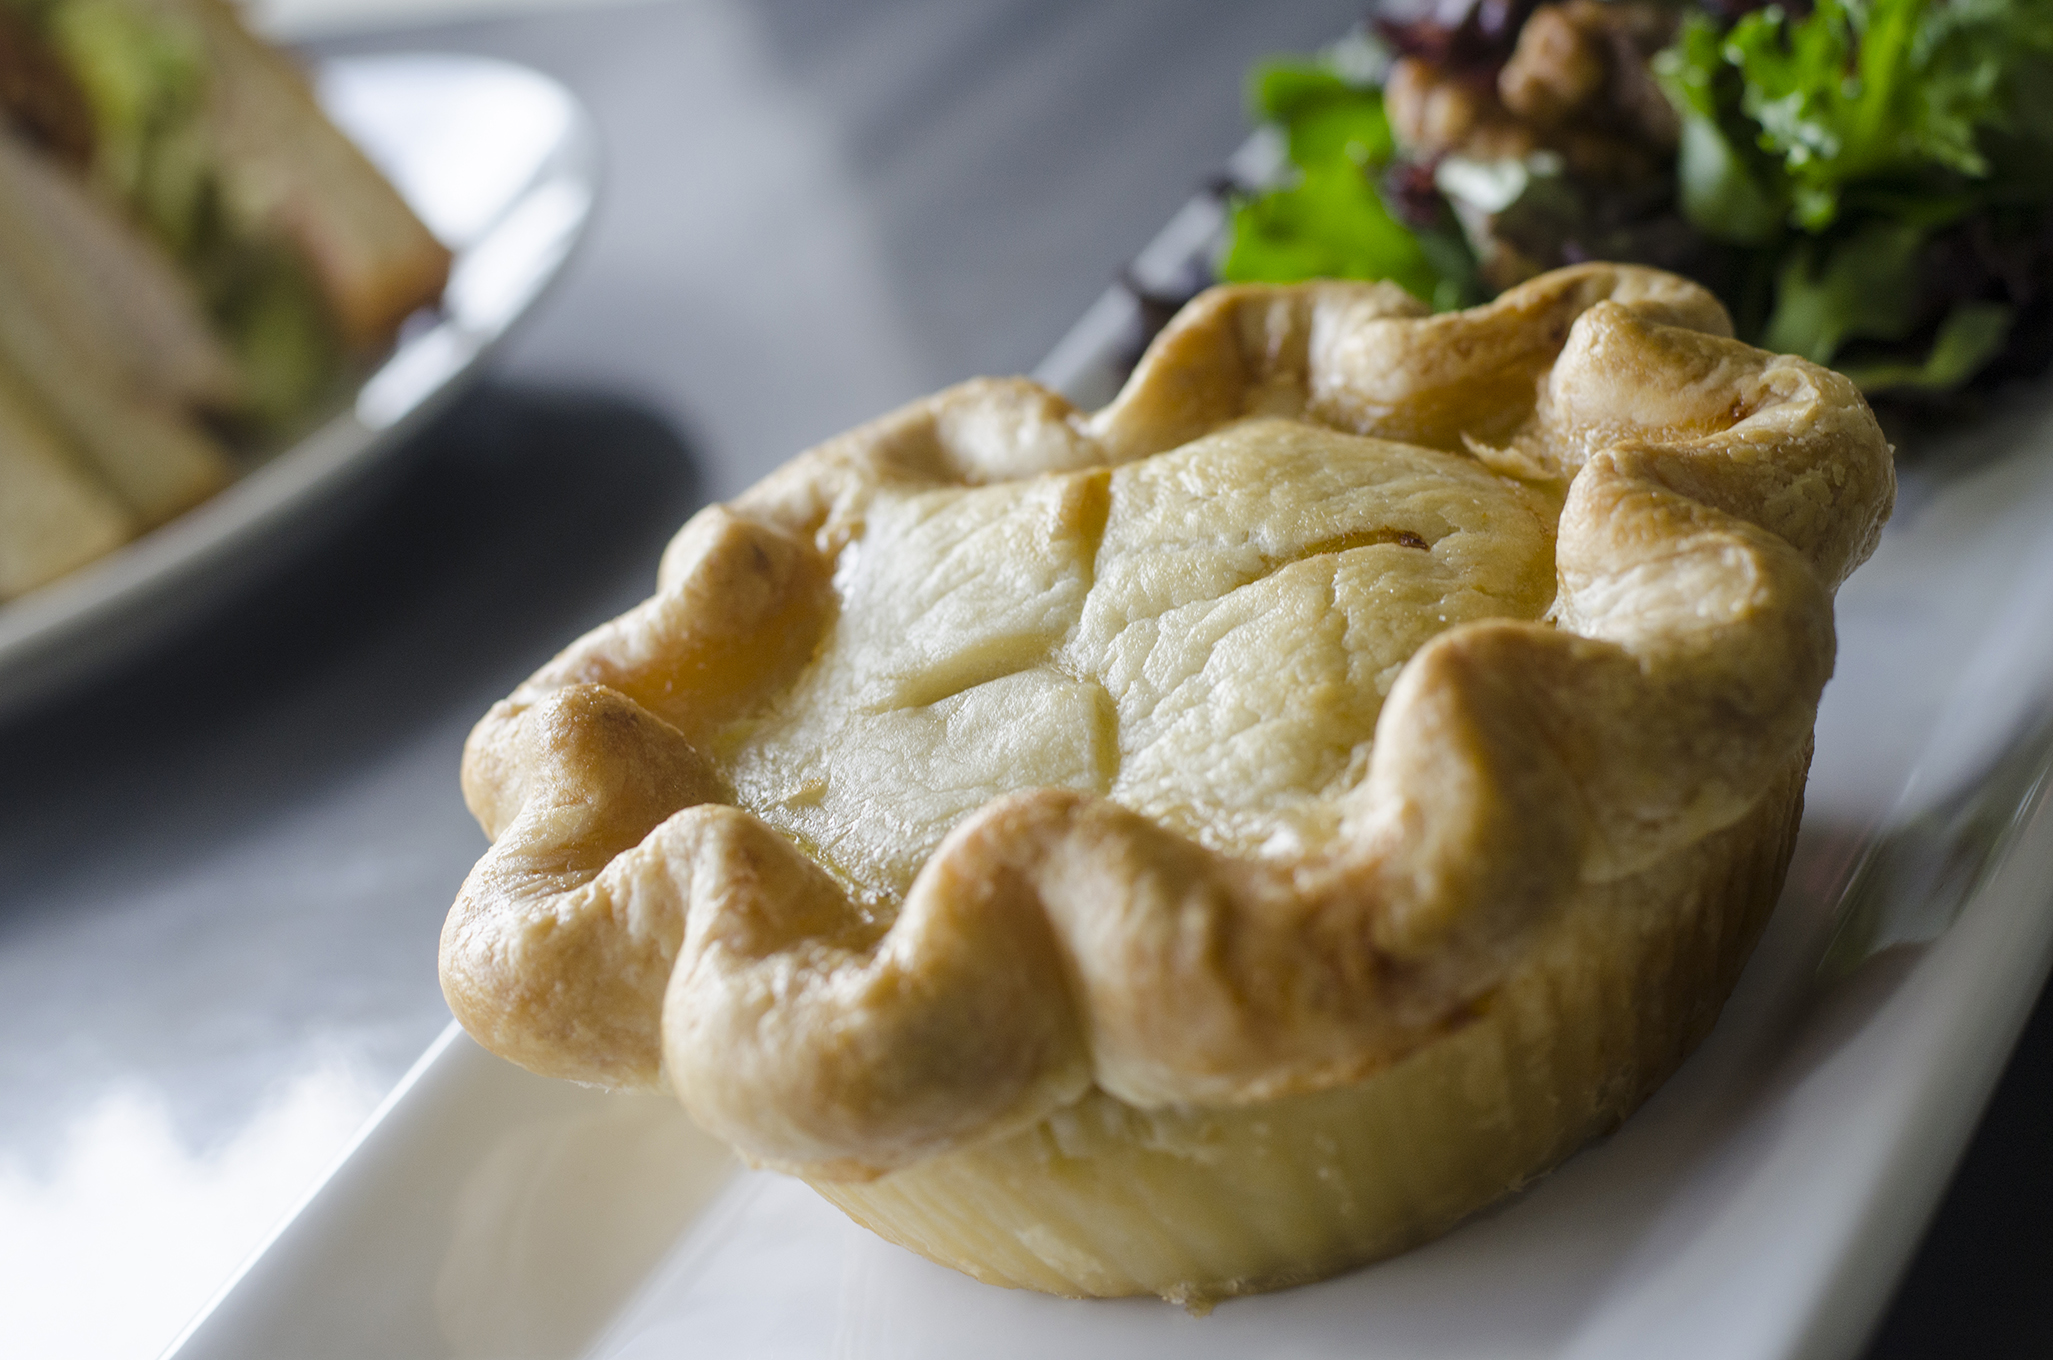 Have you ever had one of the pot pies from Riverside Pie Cafe in Windsor, Ontario?